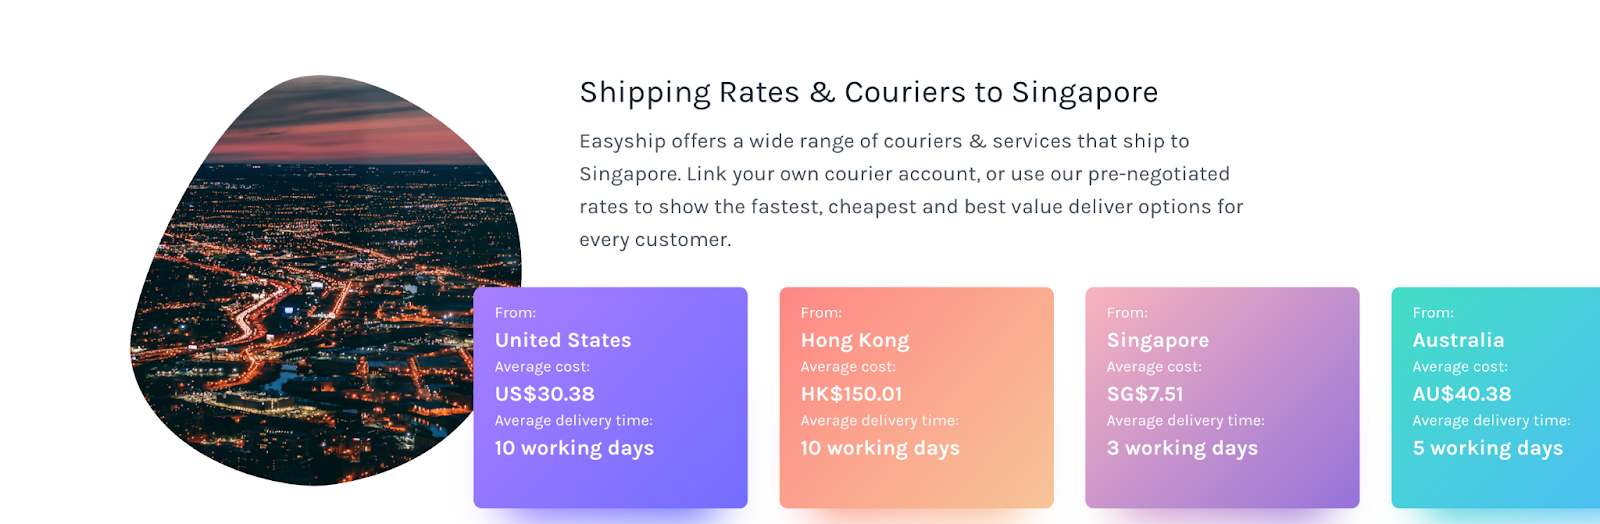 eCommerce shipping guide to Singapore.